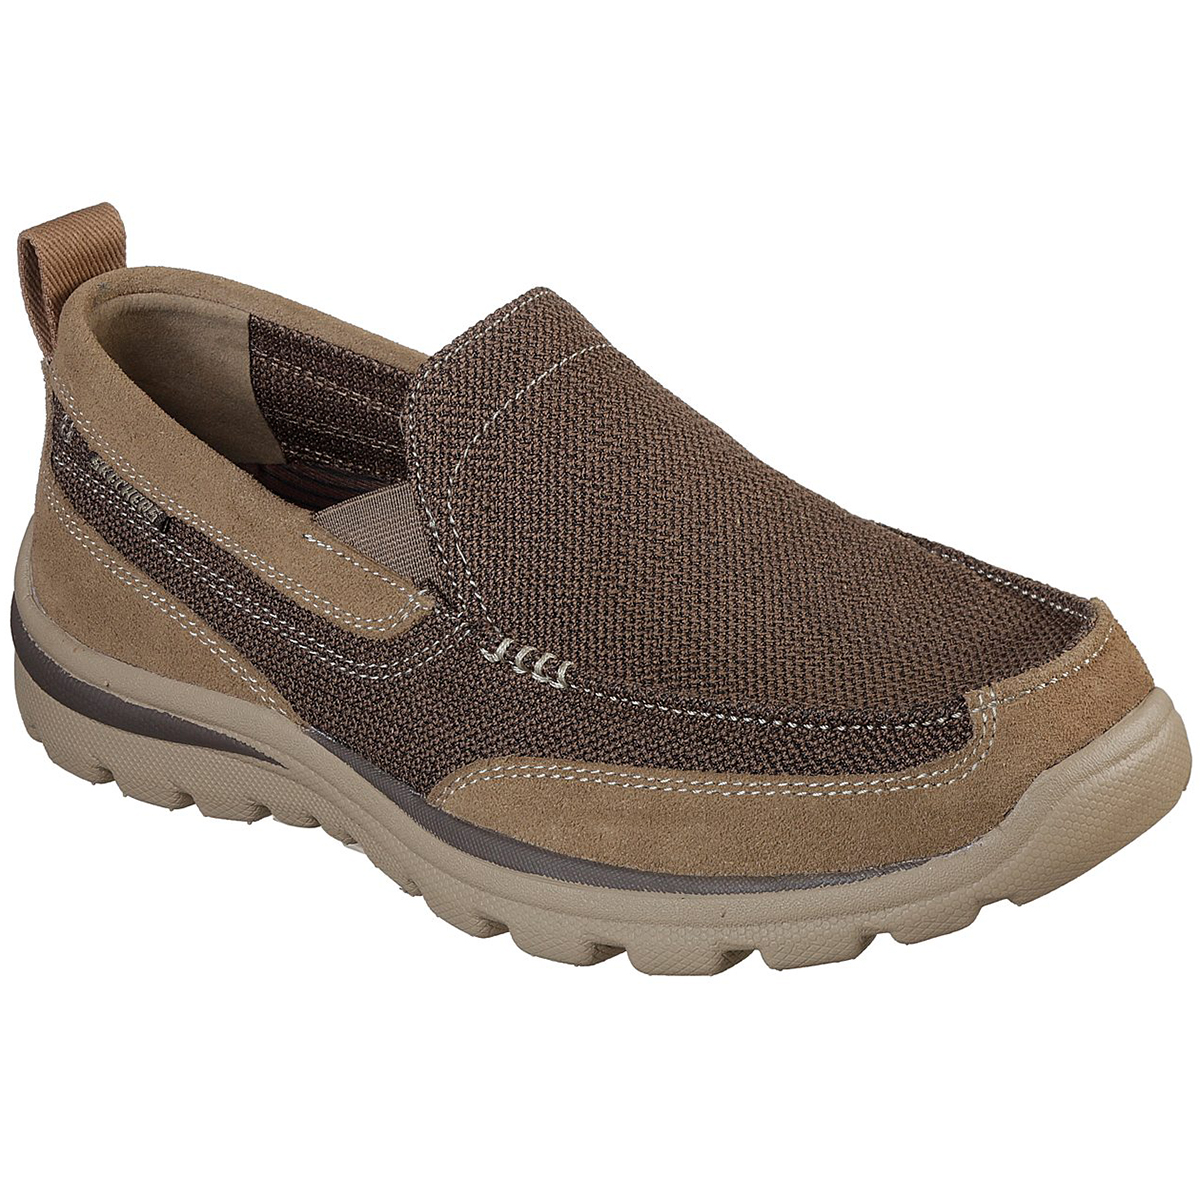 Skechers Men's Relaxed Fit Milford Slip On Shoes, Wide - Brown, 9.5